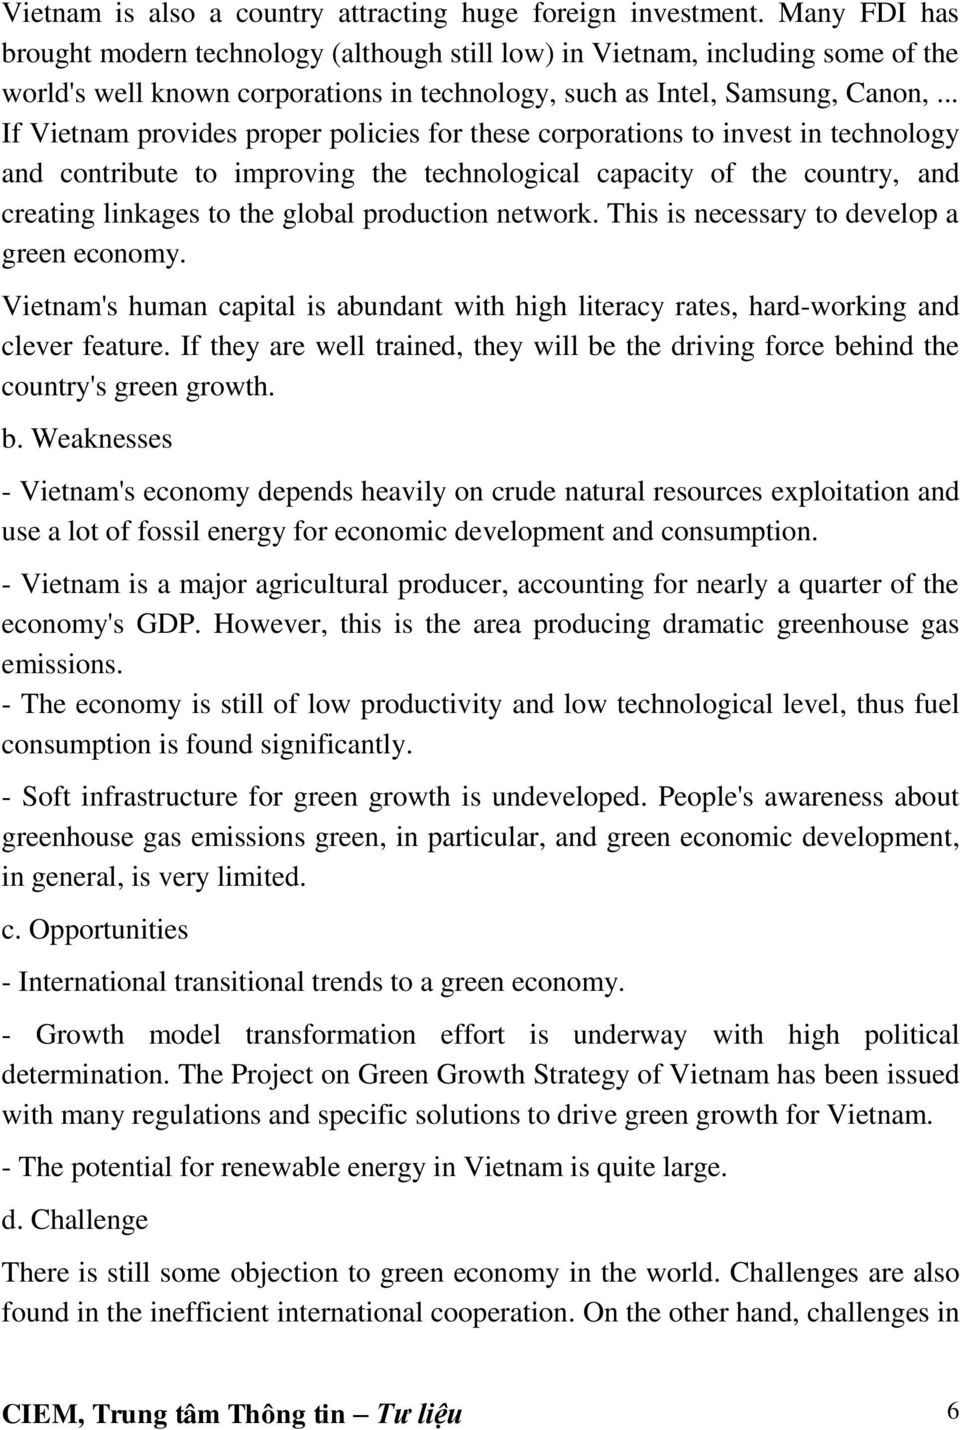 .. If Vietnam provides proper policies for these corporations to invest in technology and contribute to improving the technological capacity of the country, and creating linkages to the global